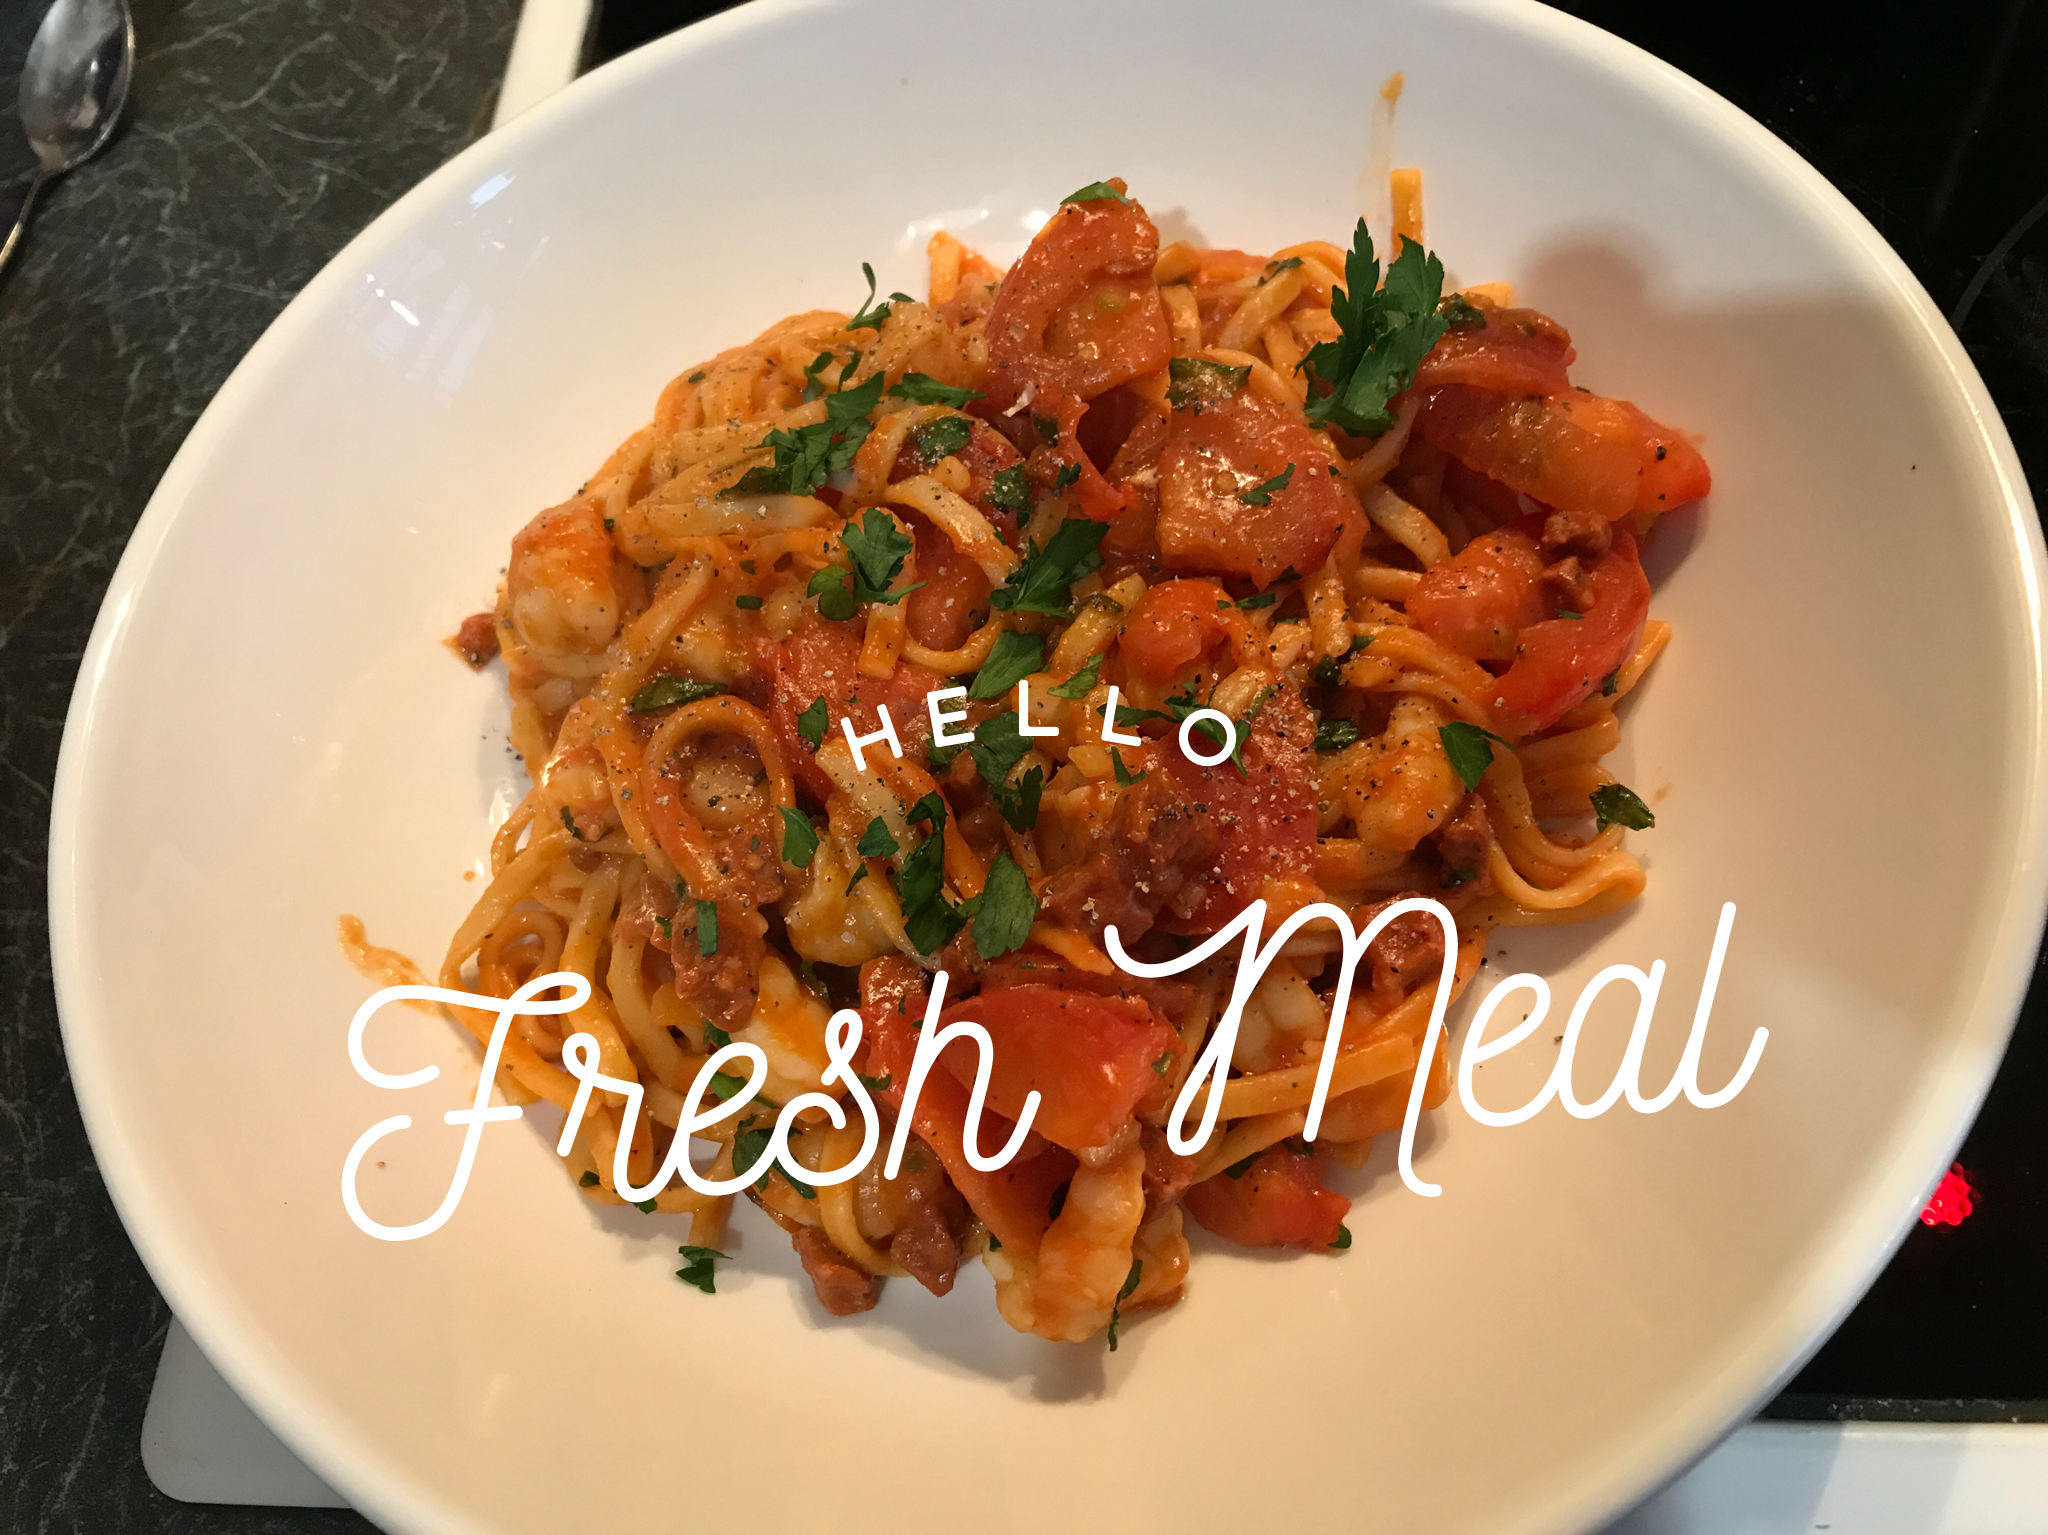 Another lovely meal tonight #hellofreshsnaps #fit15